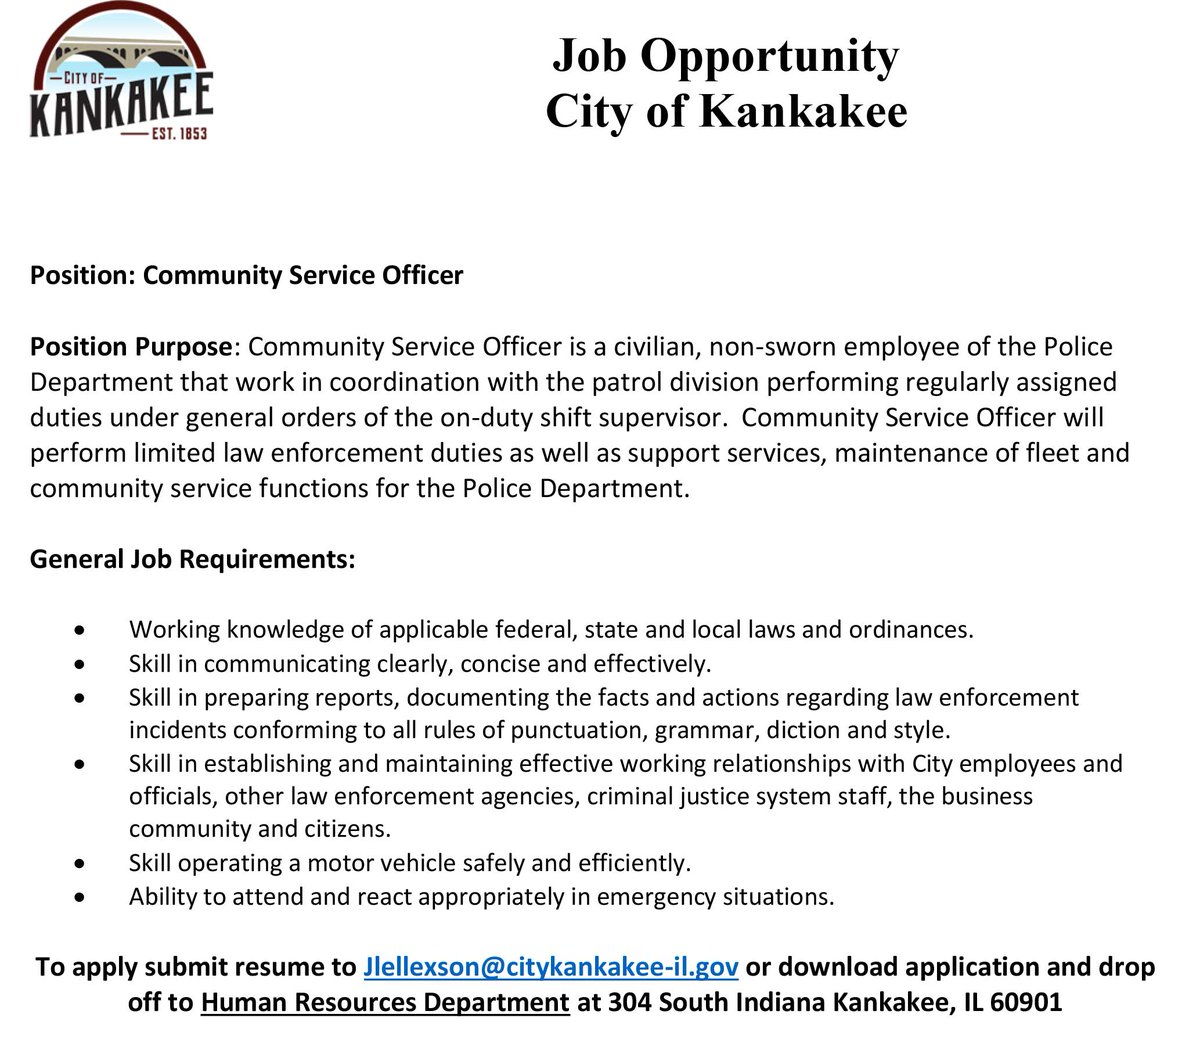 NOW HIRING: The City of Kankakee is seeking a Community Service Officer who will report to the Police Chief and Deputy Chief of Police. For more information, please refer to the position requirements. Please send your resume to Human Resources at jlellexson@citykankakee-il.gov.